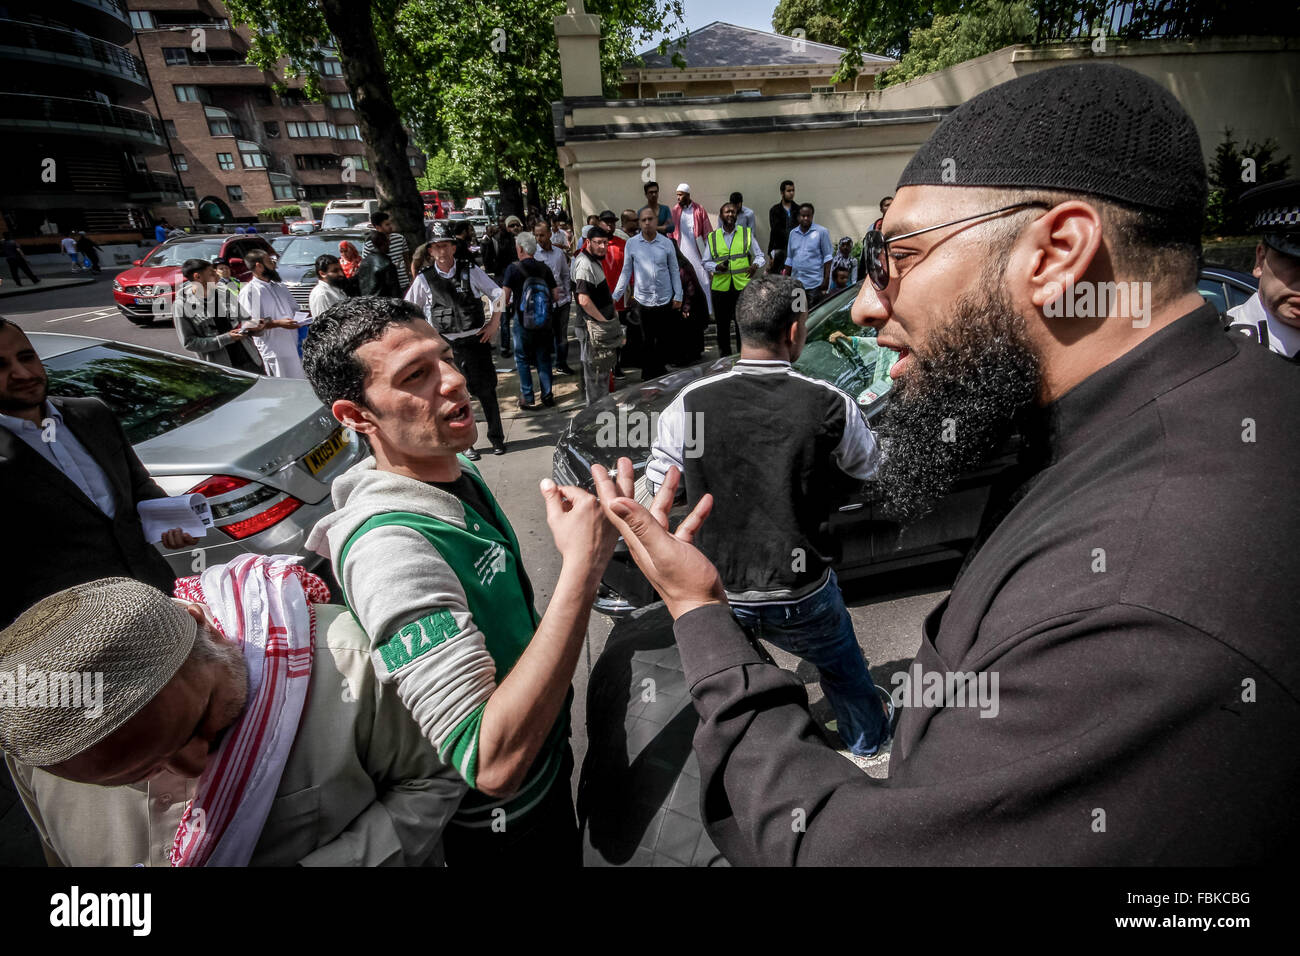 FILE IMAGES: London, UK. 12th July, 2013. File Images from 12-07-2013: Mohammed Reza Haque (Right), 35, known as - Stock Image